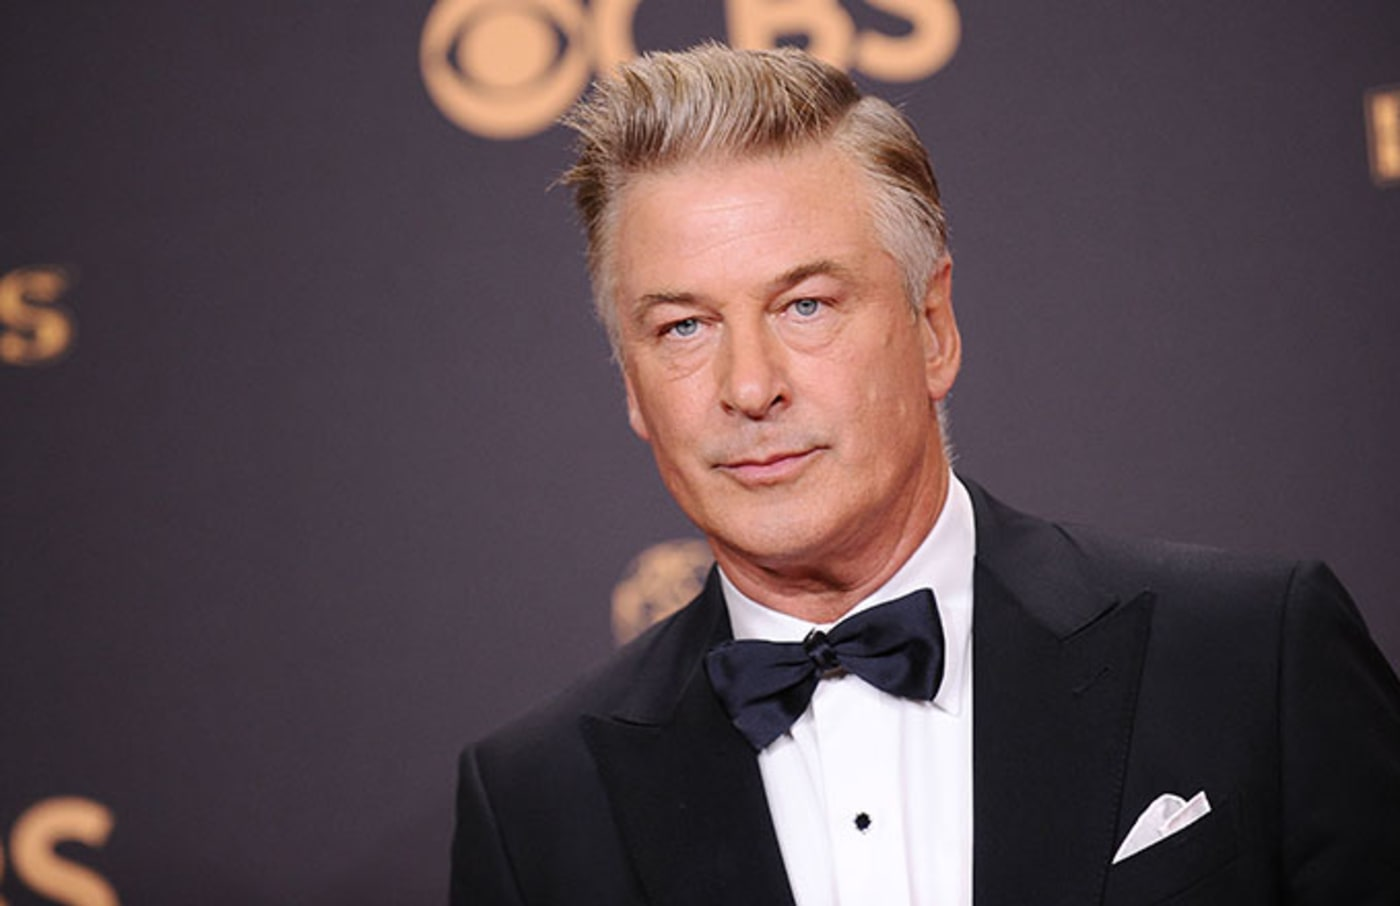 This is a photo of Alec Baldwin.